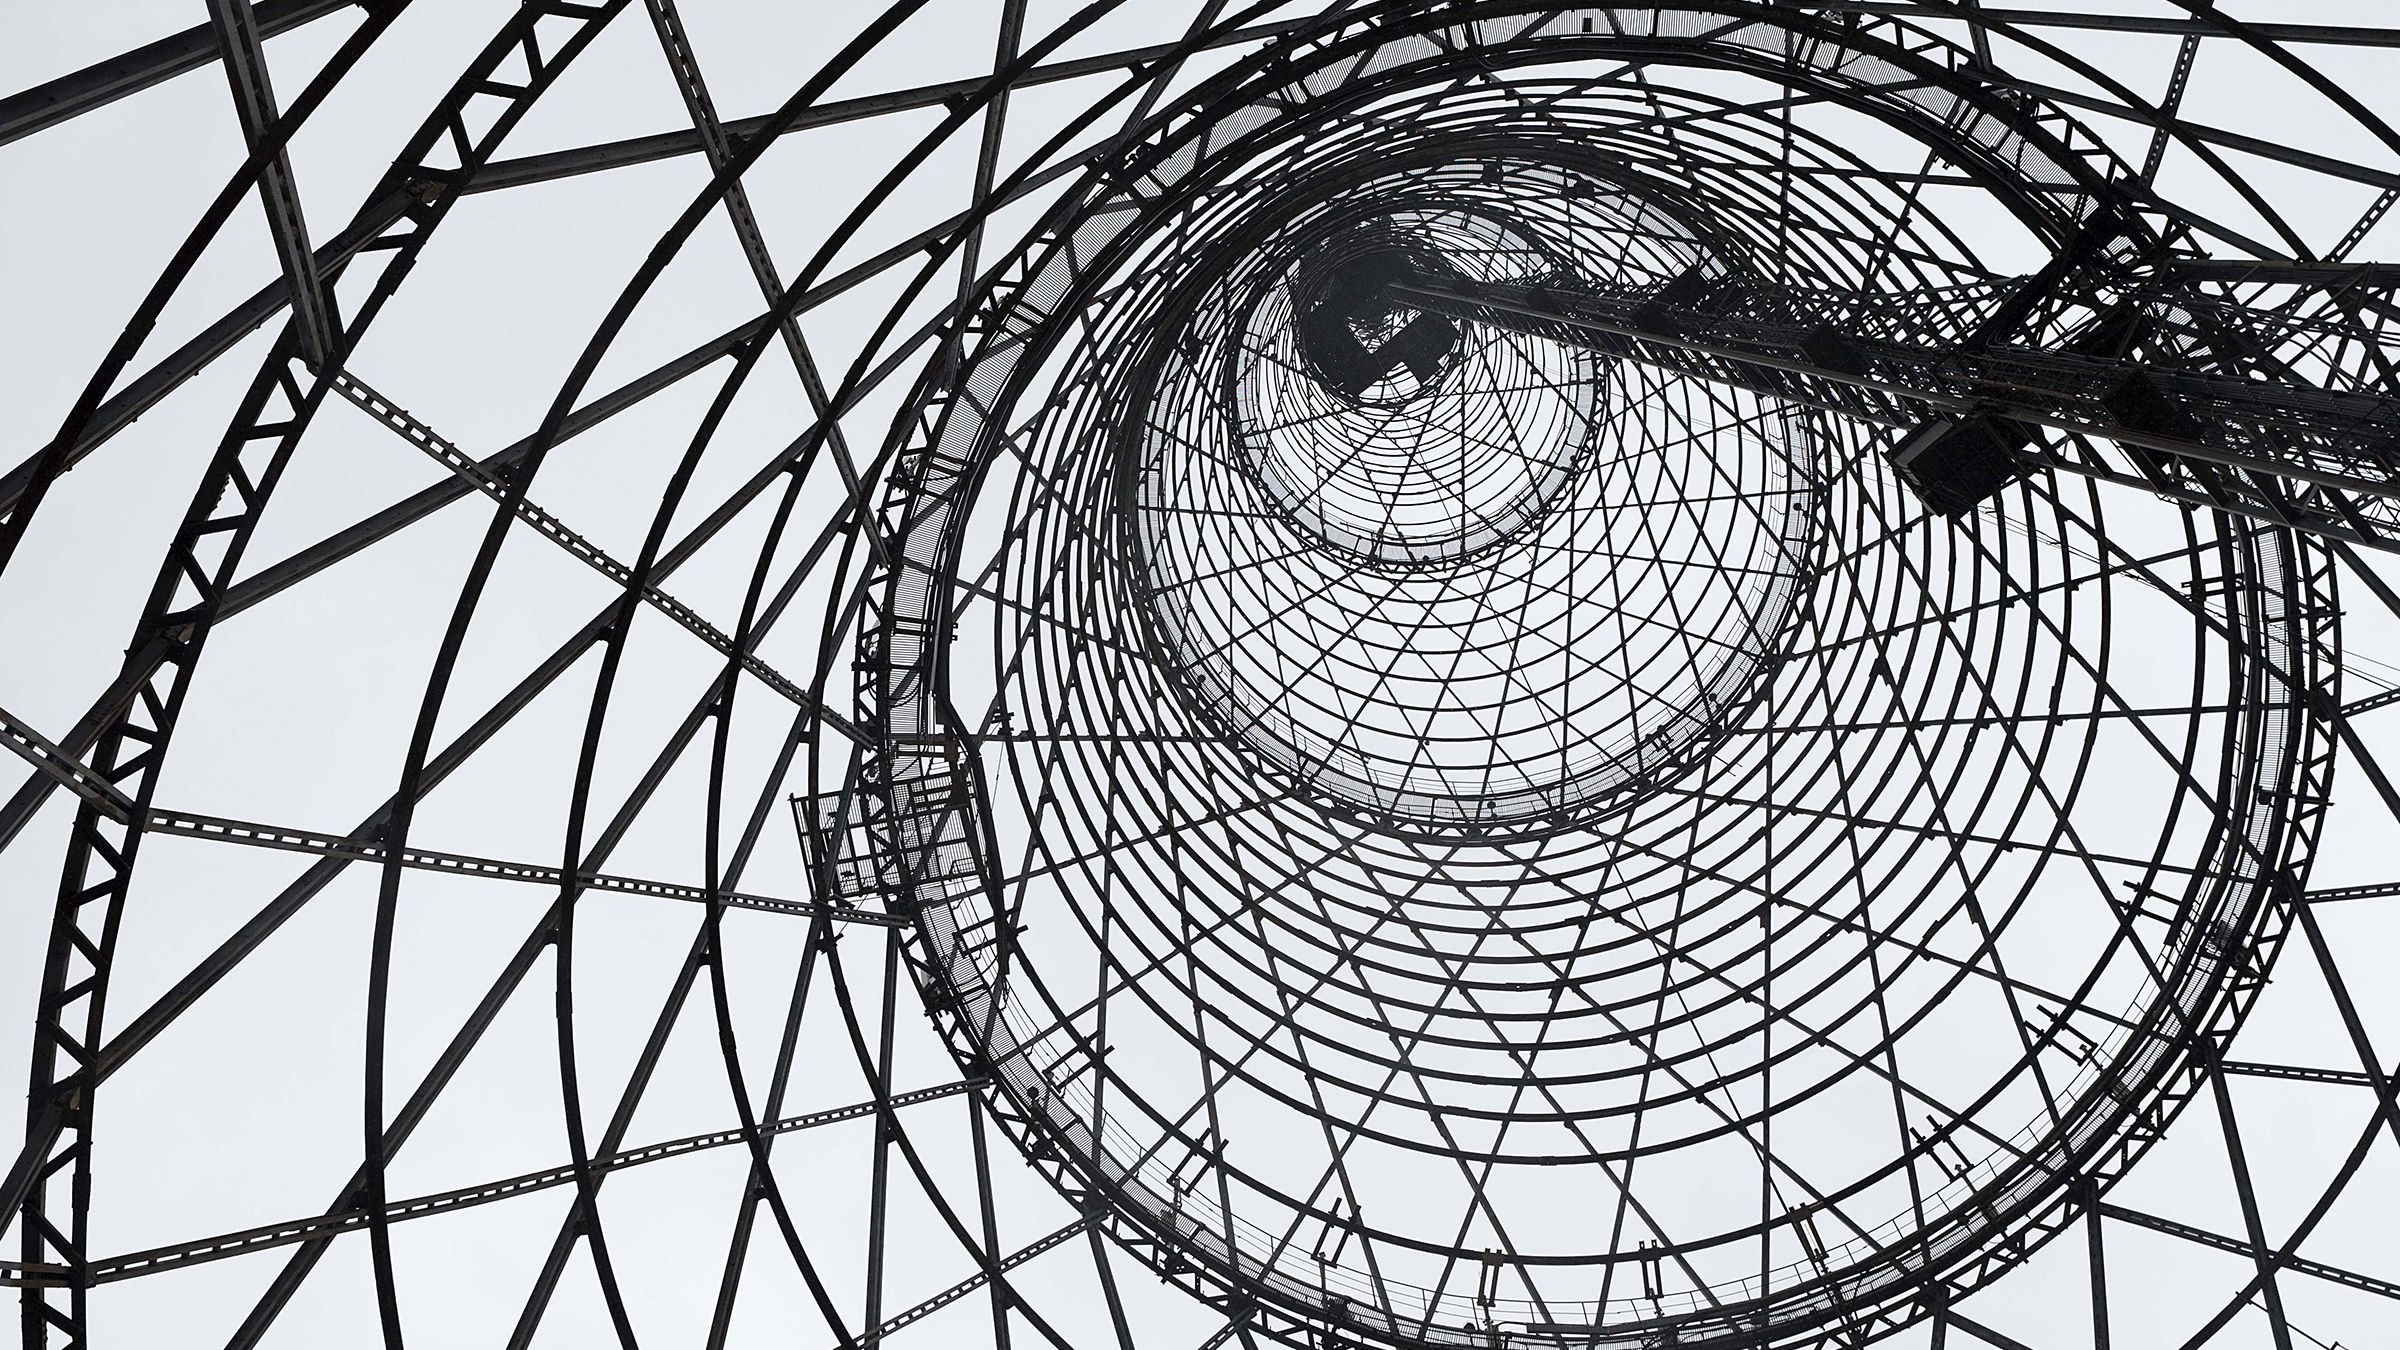 Moscow's 92-year-old Shukhov Tower